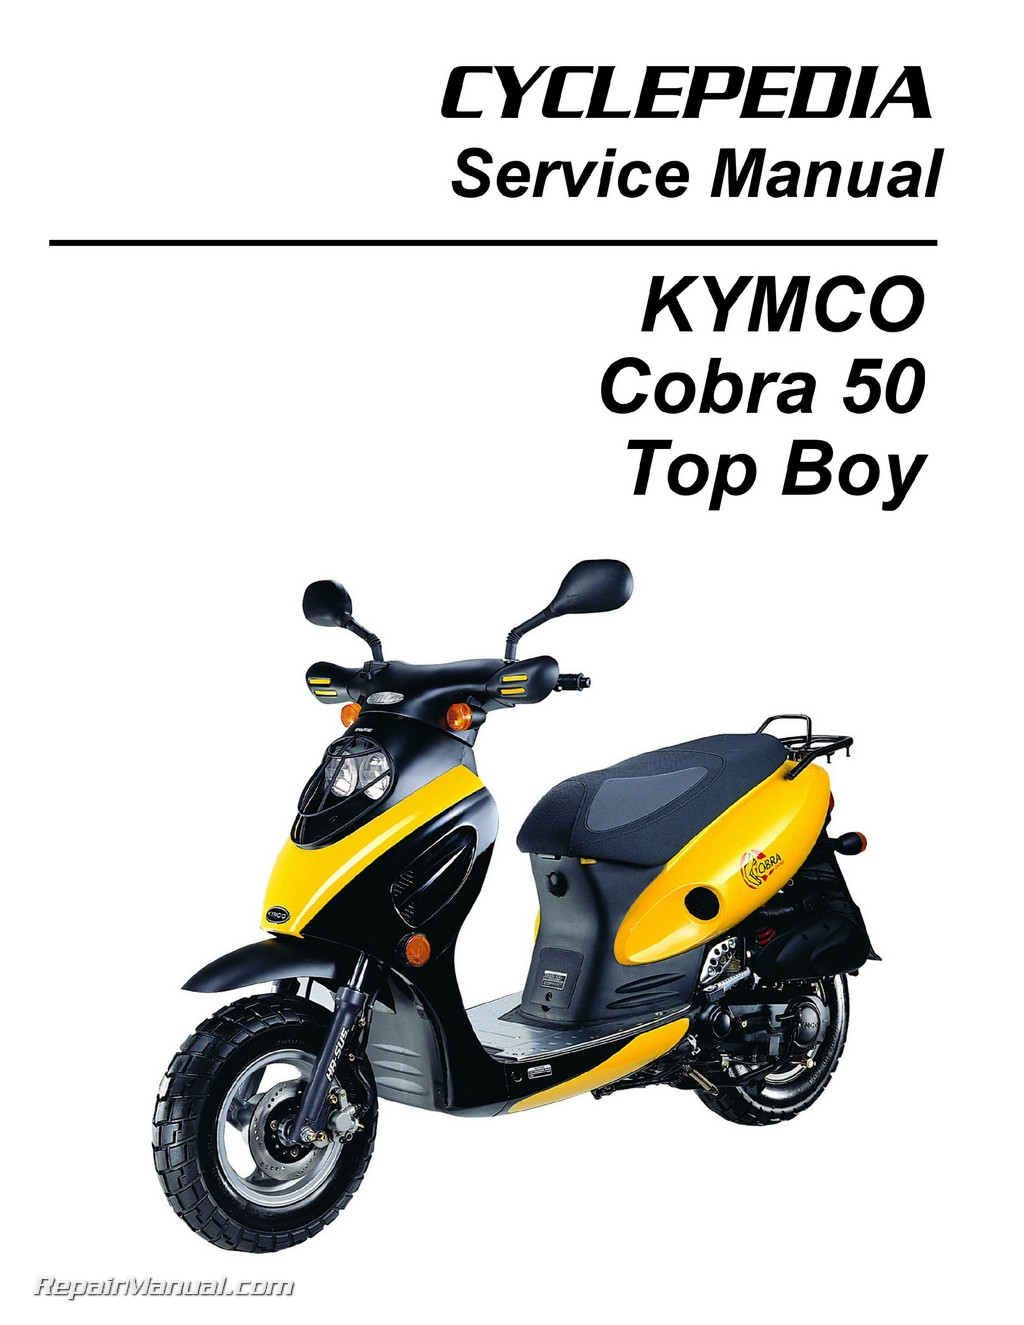 kymco cobra 50 top boy scooter service manual printed by. Black Bedroom Furniture Sets. Home Design Ideas